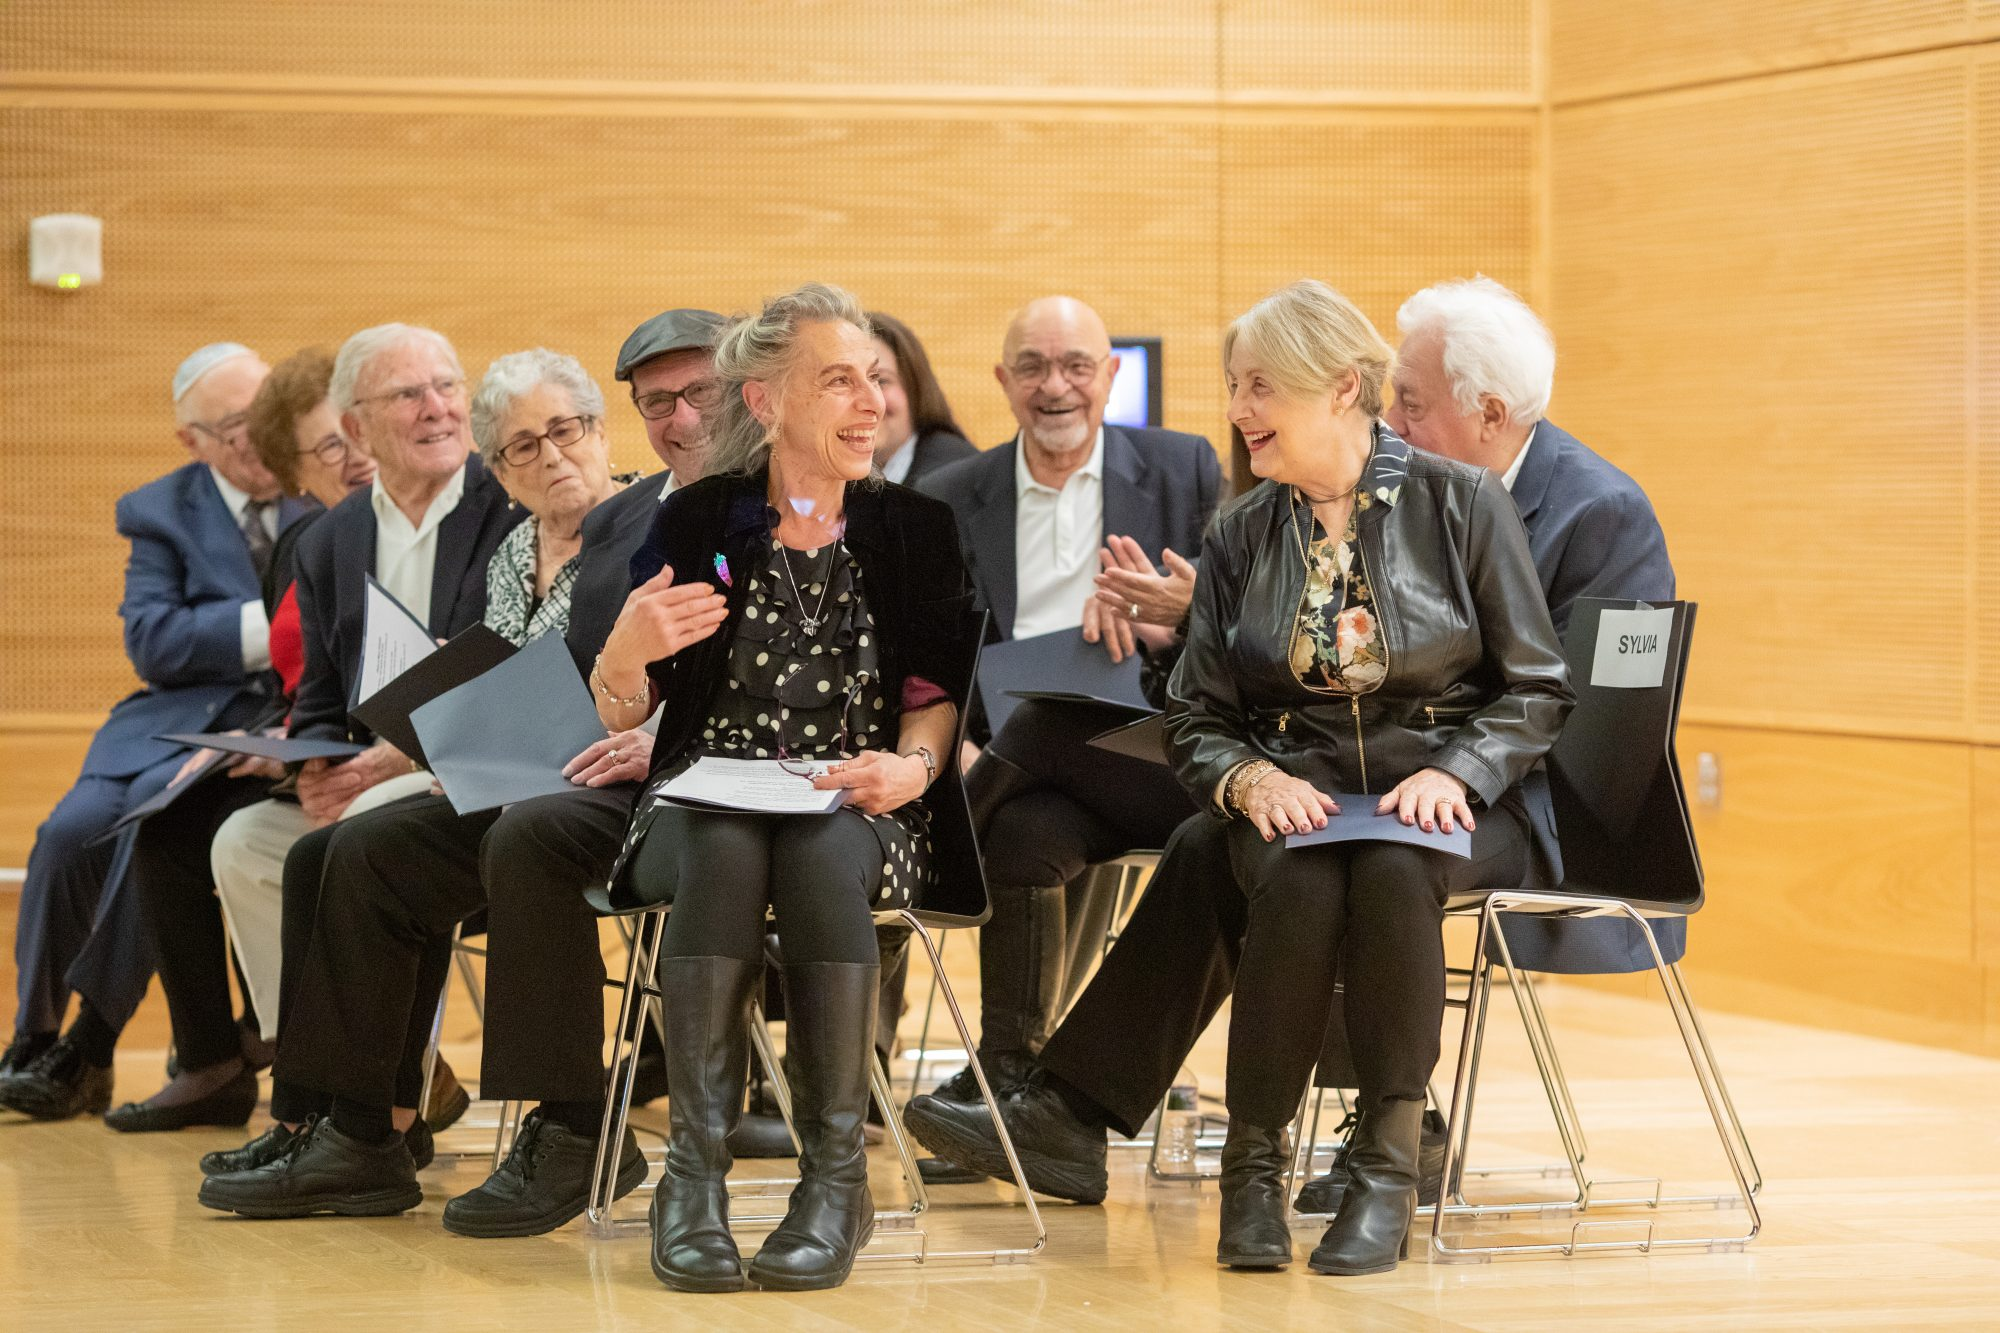 The Ladineros, a group of the last generation of Ladino speakers in Seattle, on stage at Ladino Day 2019 at the UW.